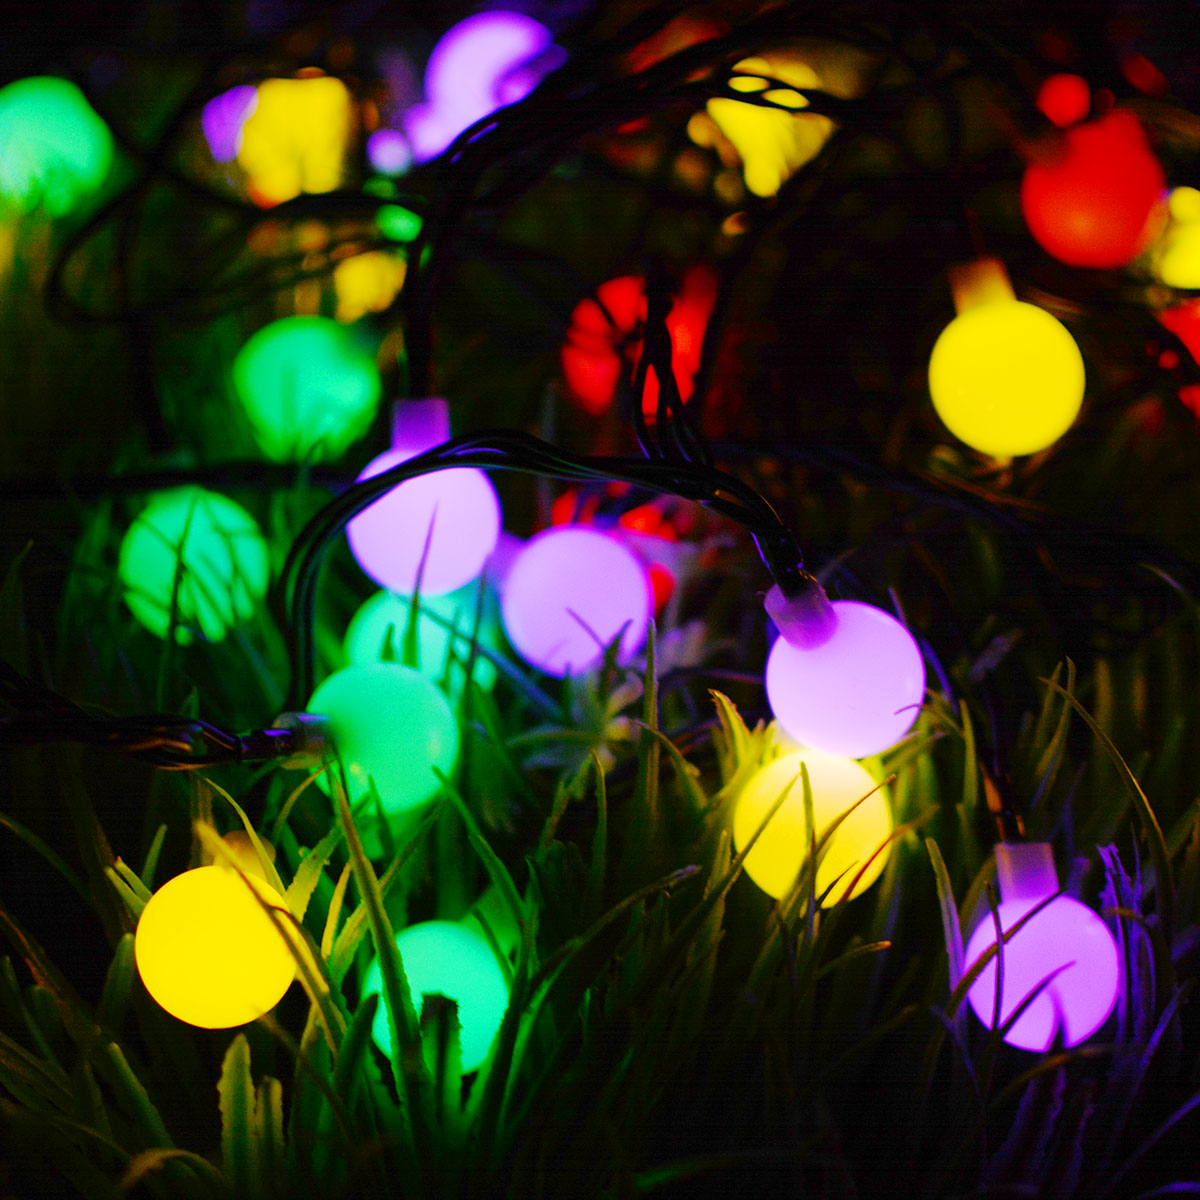 30LEDs/60LEDs 6M/10.5M Solar Powered LED Christmas Light Ball String Light for Home Garden Lawn Party Decor 60 lights white ball-8 mode - color